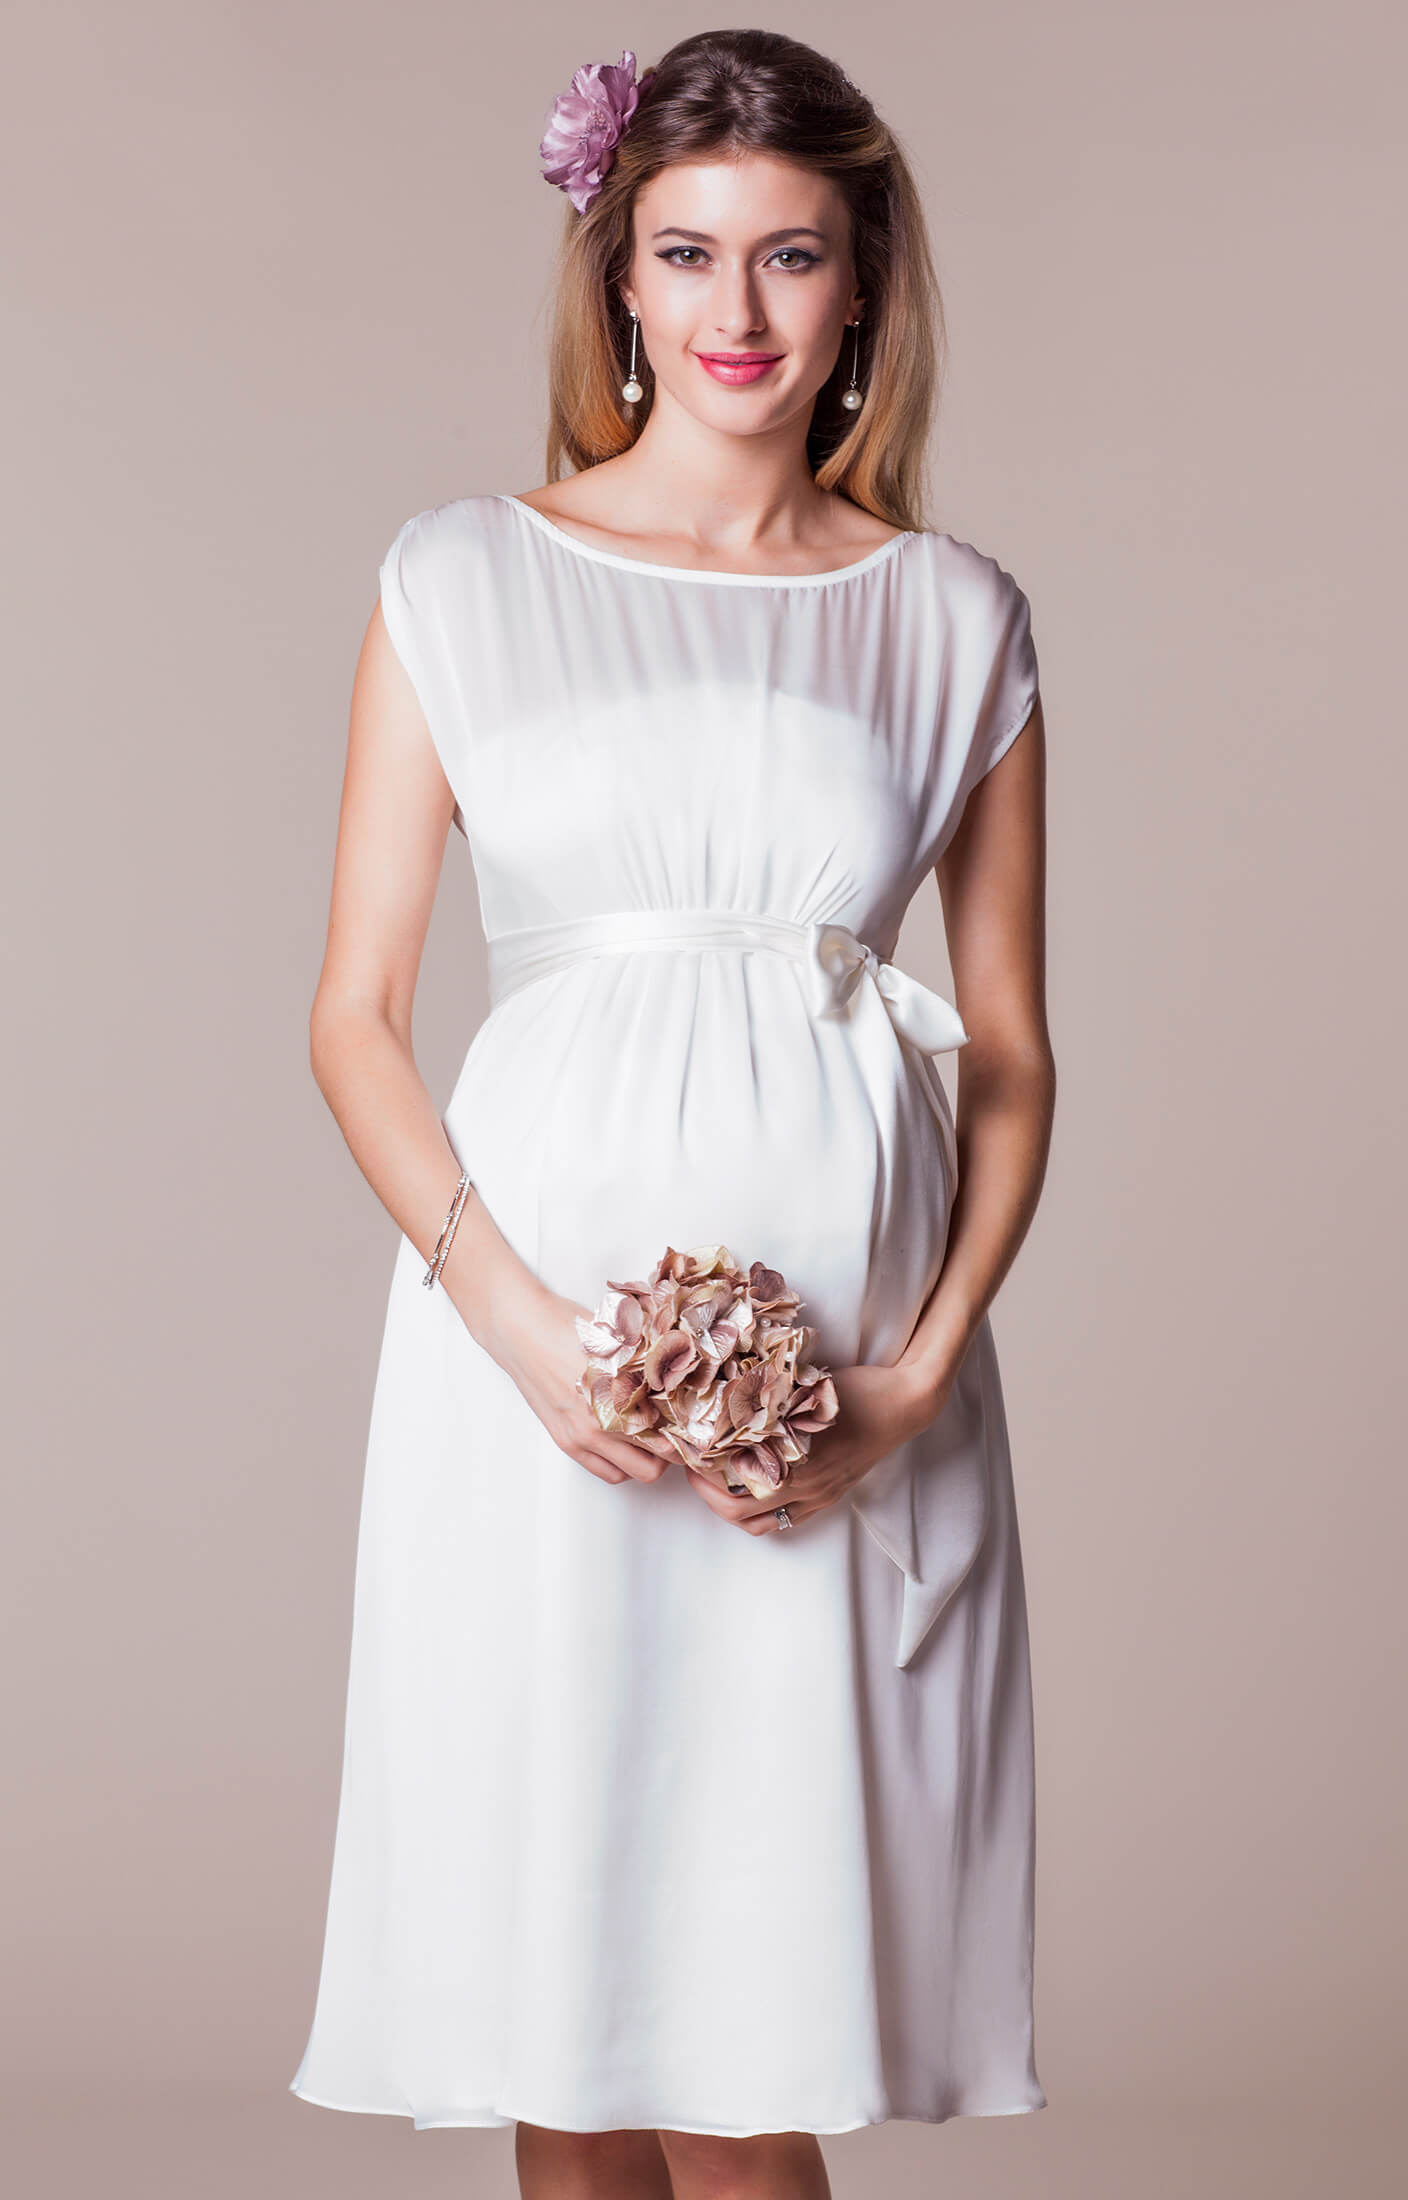 Maya Maternity Wedding Gown Short Ivory short maternity wedding dresses Maya Maternity Wedding Gown Short Ivory by Tiffany Rose